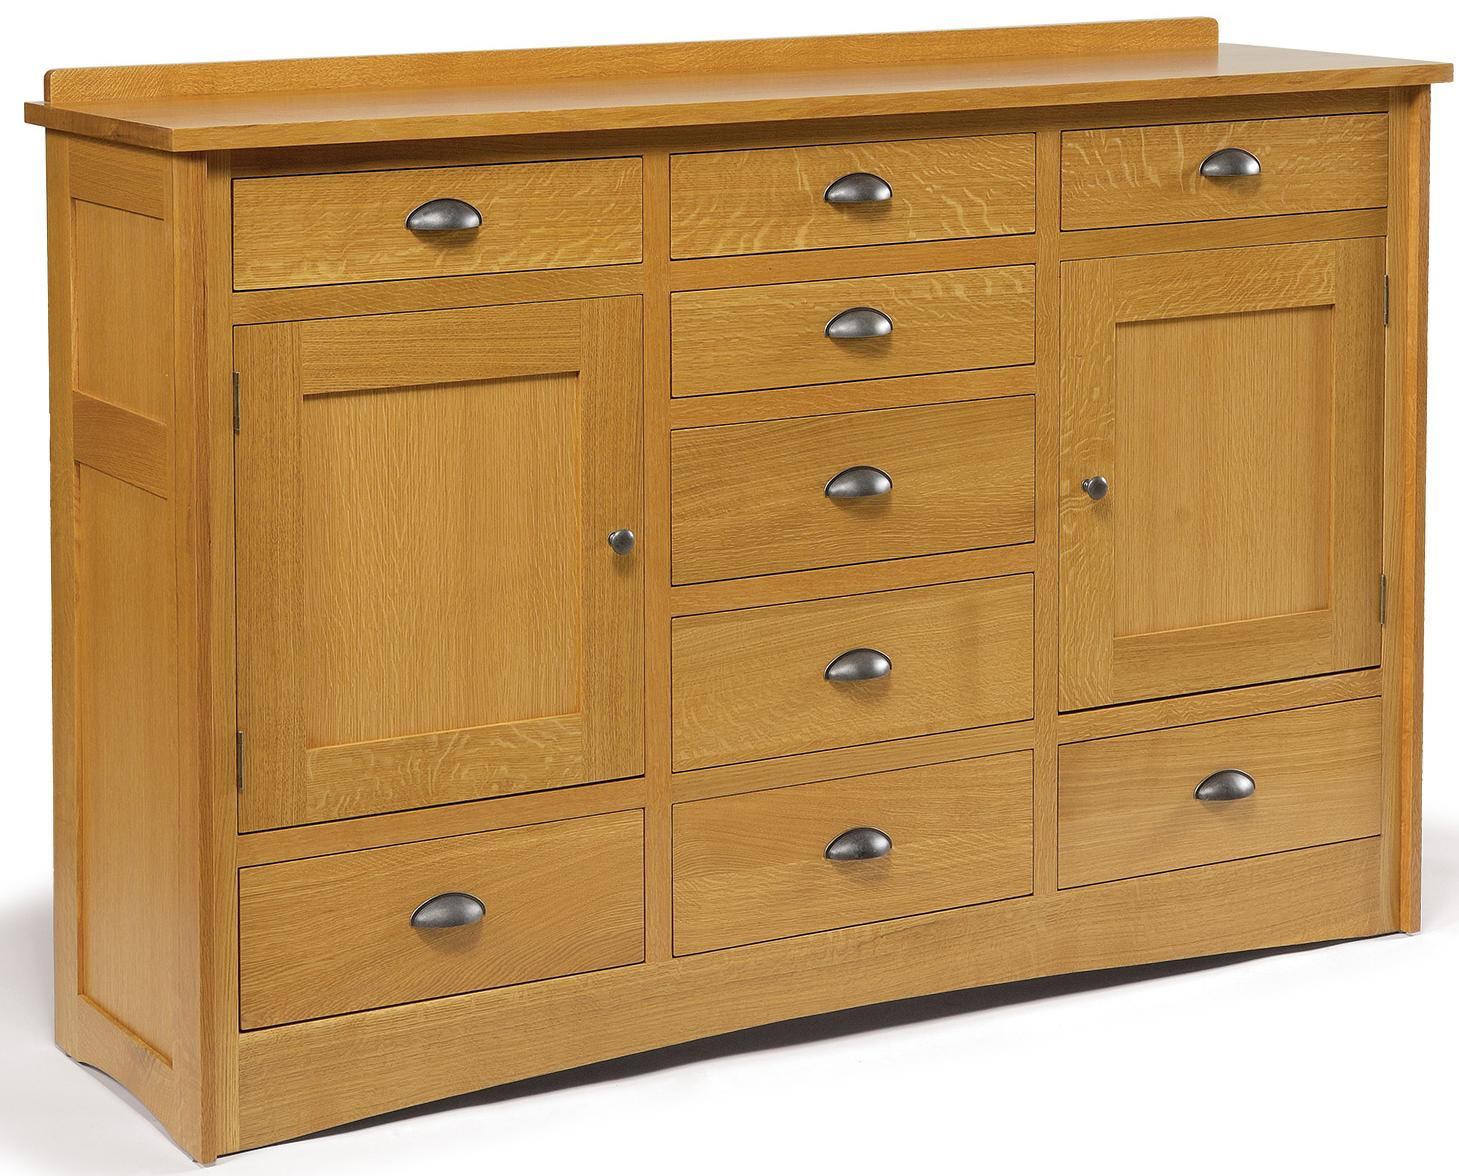 s dresser trim furniture threshold products greensburg drawers dressers doors item olinde height millennium width with transitional